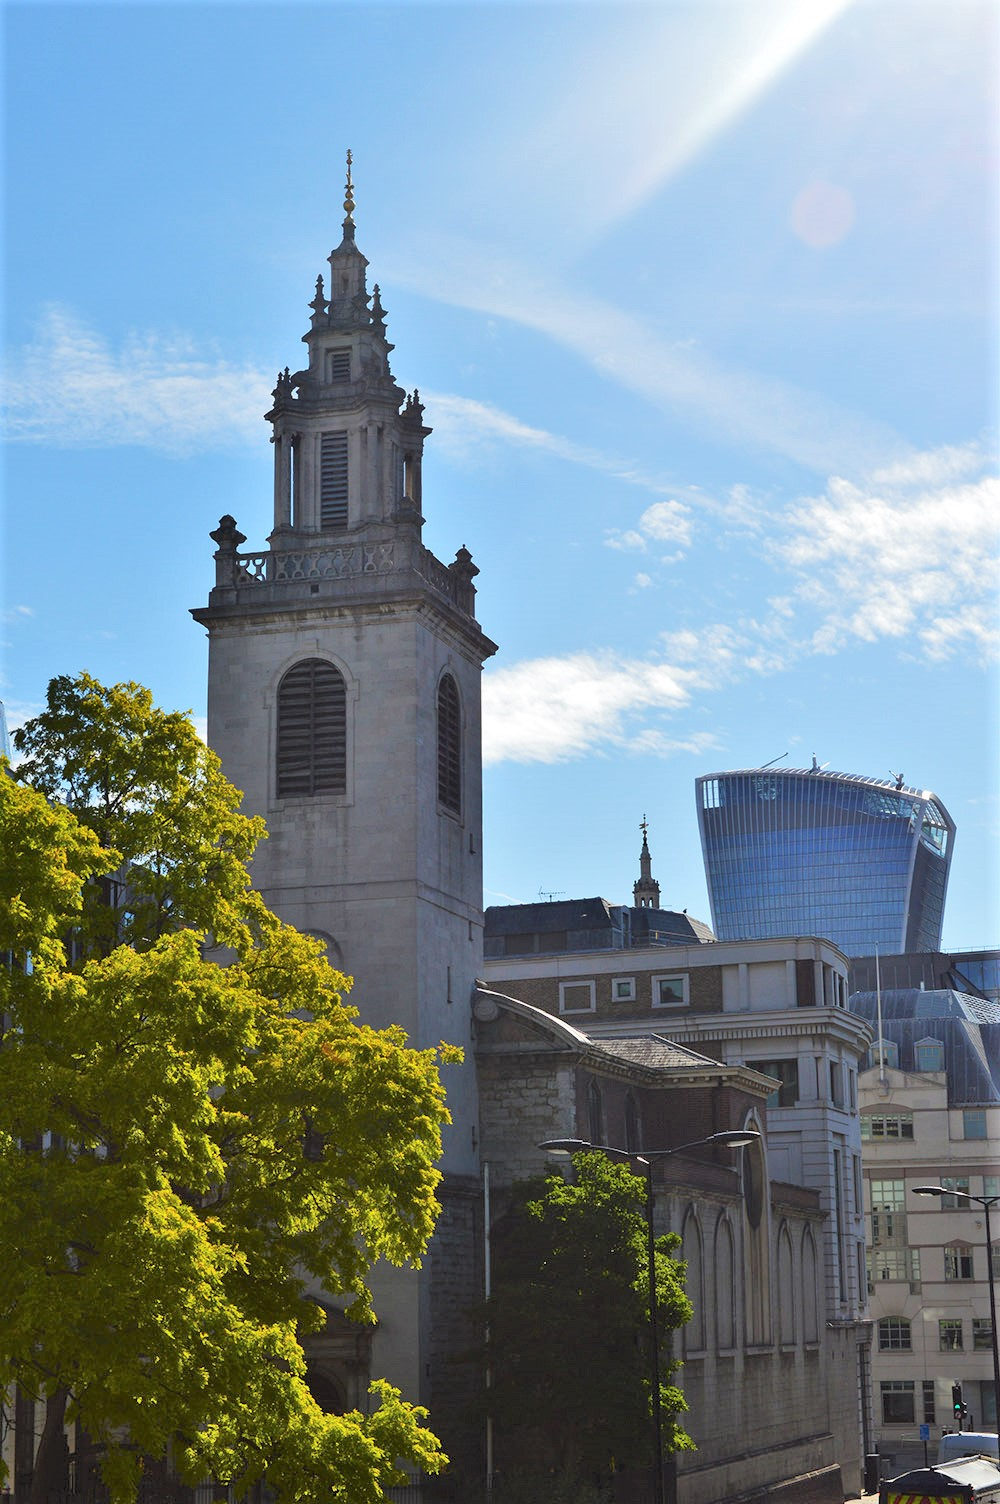 A view of St James Garlickhythe building with the Walkie Talkie in the distance